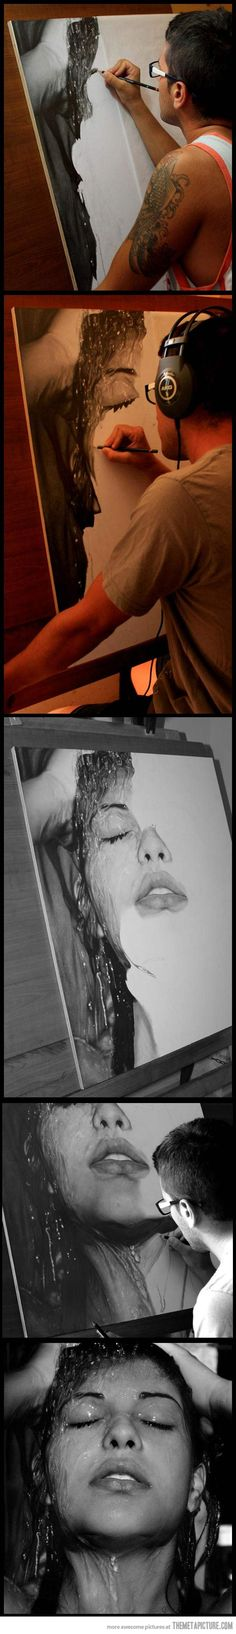 Mind-Blowing photorealistic pencil drawing…( ...in case you didn't believe it was a drawing.)